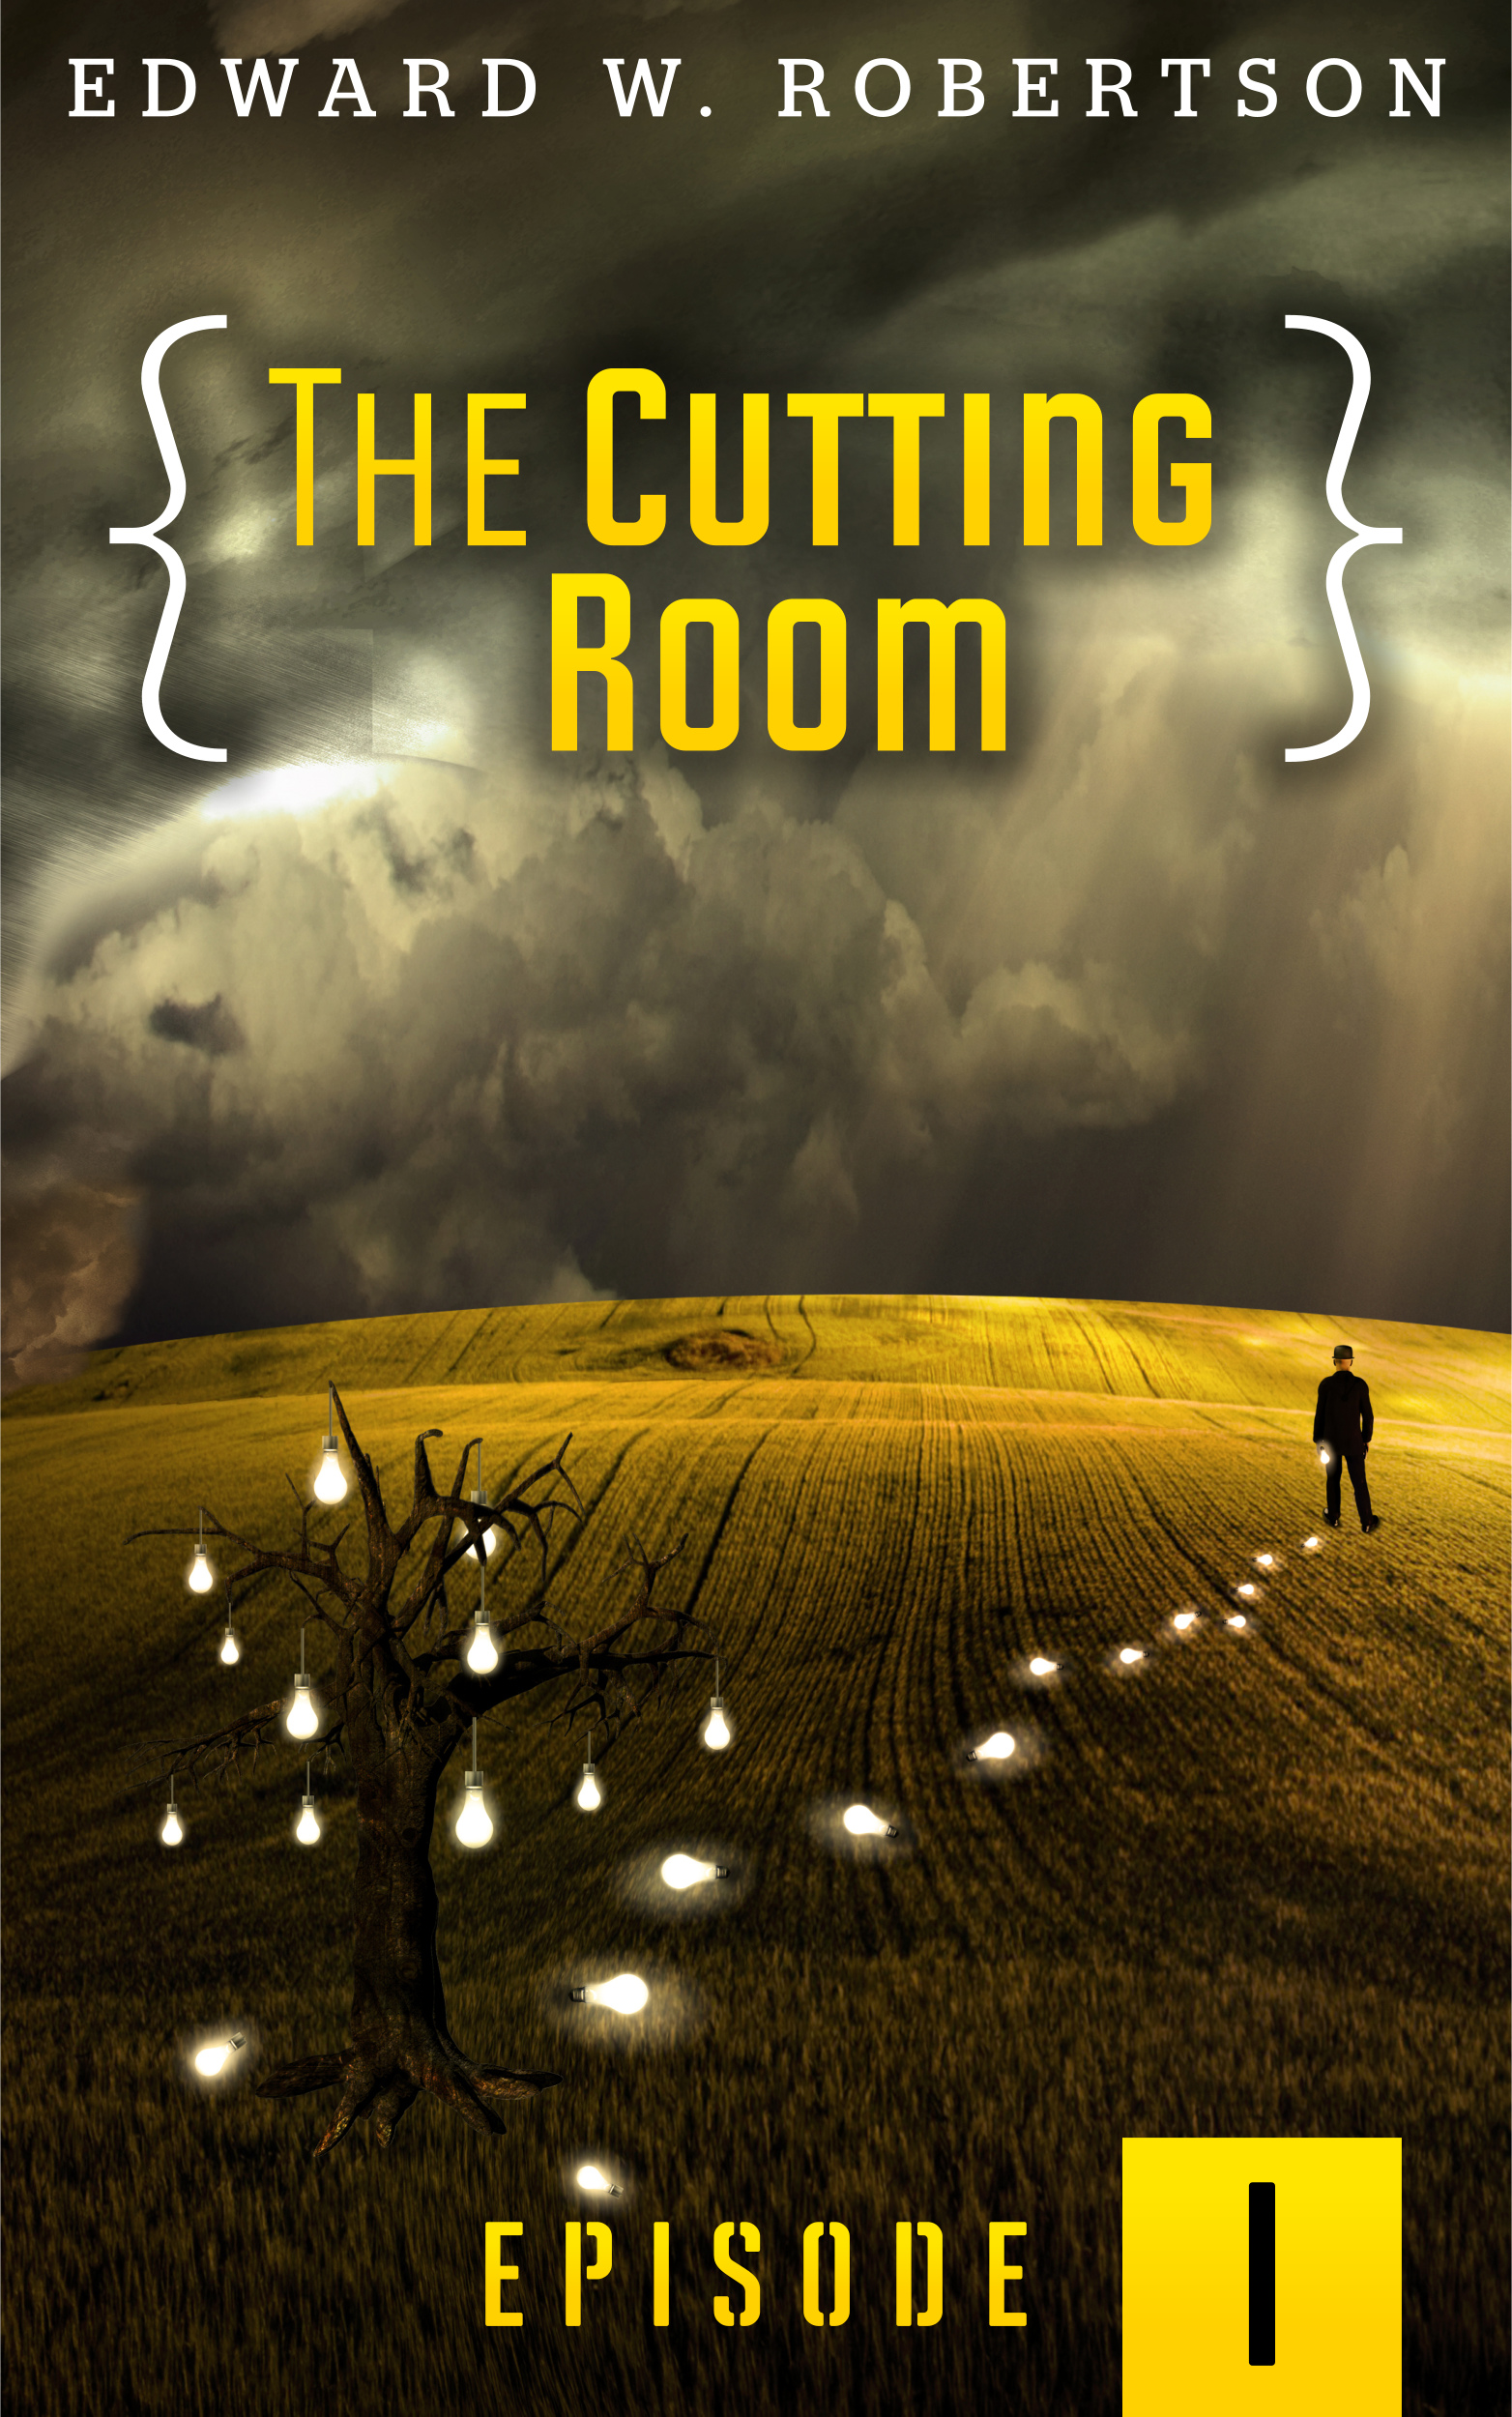 The Cutting Room: Episode I